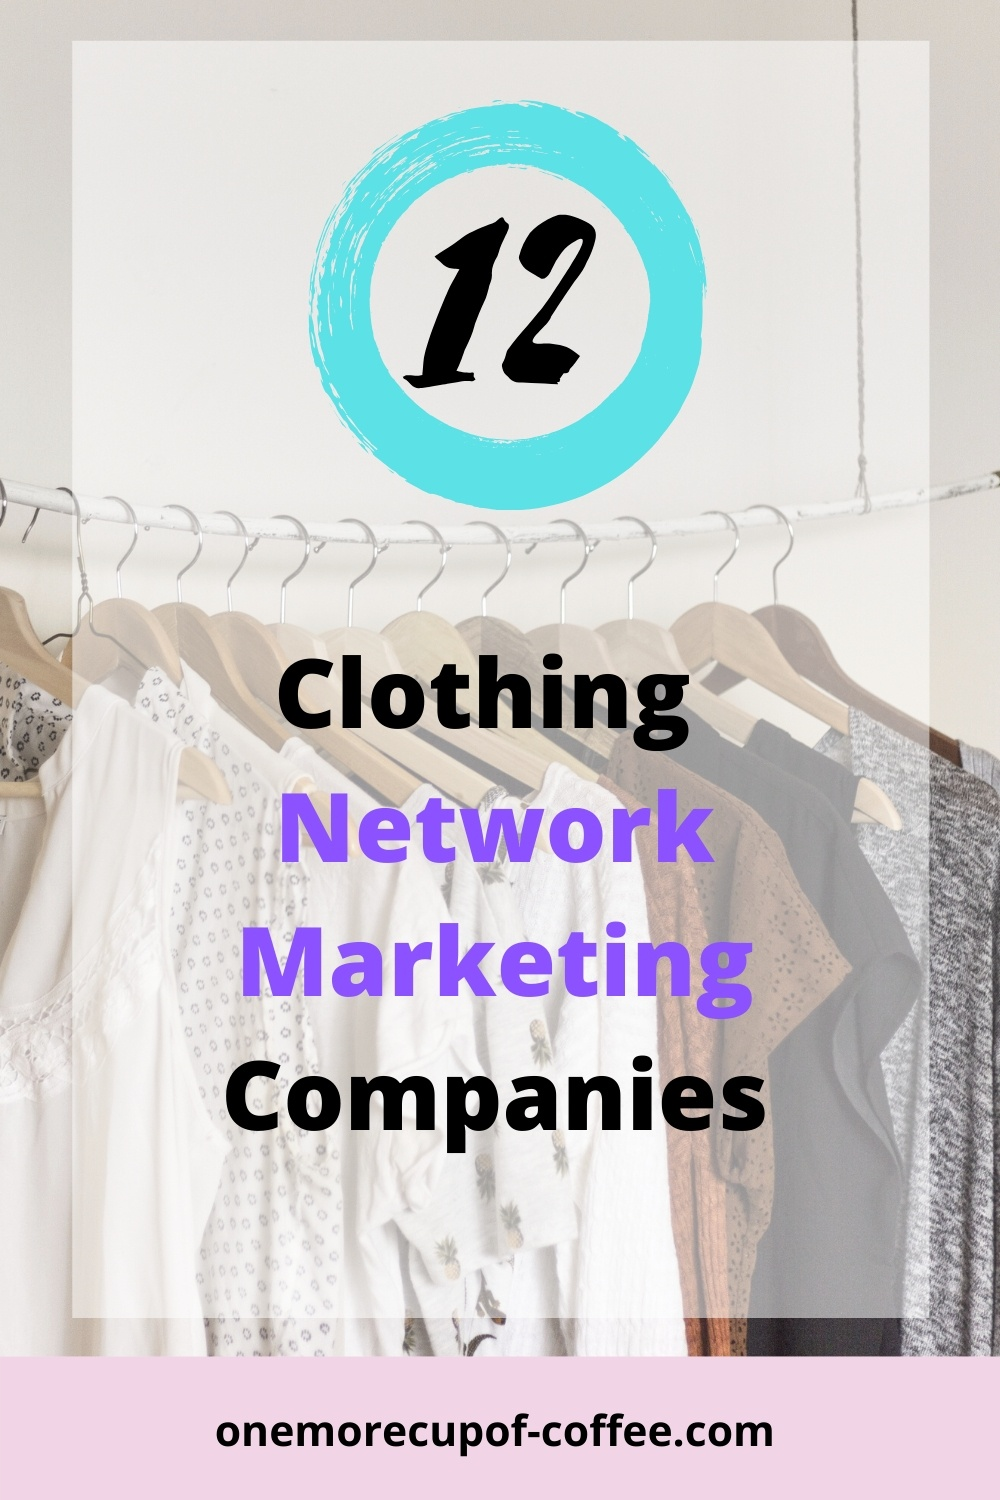 Clothing rack to represent clothing network marketing companies